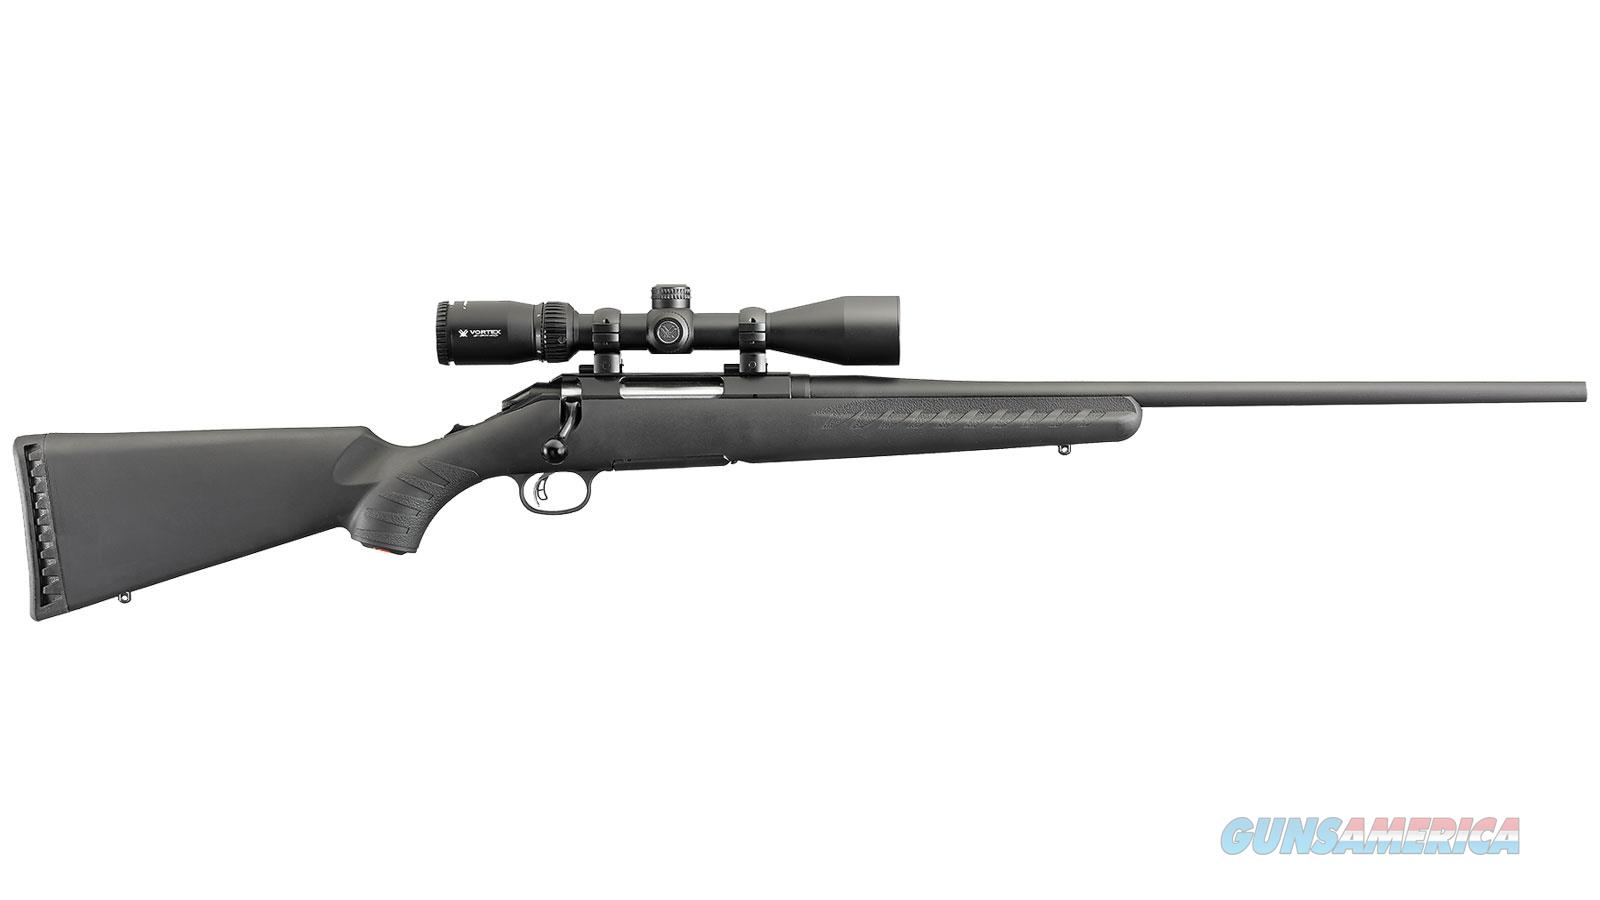 Ruger American 308 Rifle with Scope  Guns > Rifles > Ruger Rifles > American Rifle